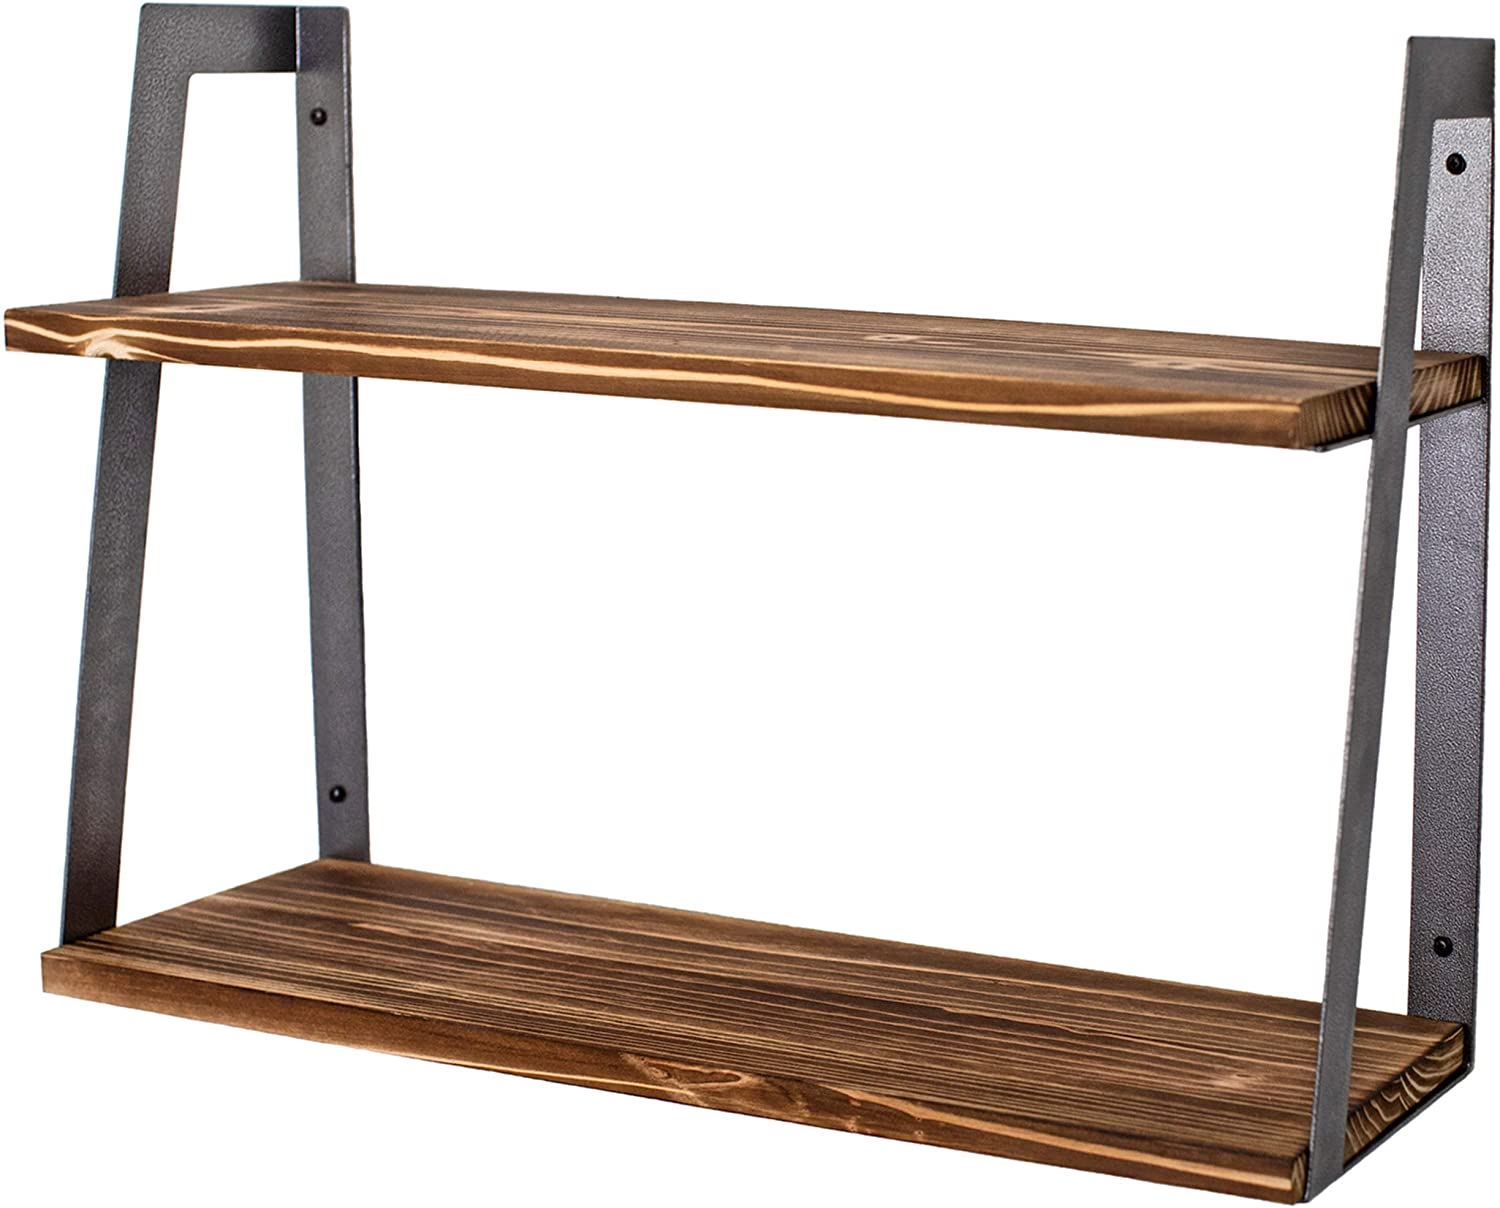 Peter's Goods 2-Tier Modern Inexpensive Rustic - Wall Shelves 5 ☆ very popular Floating